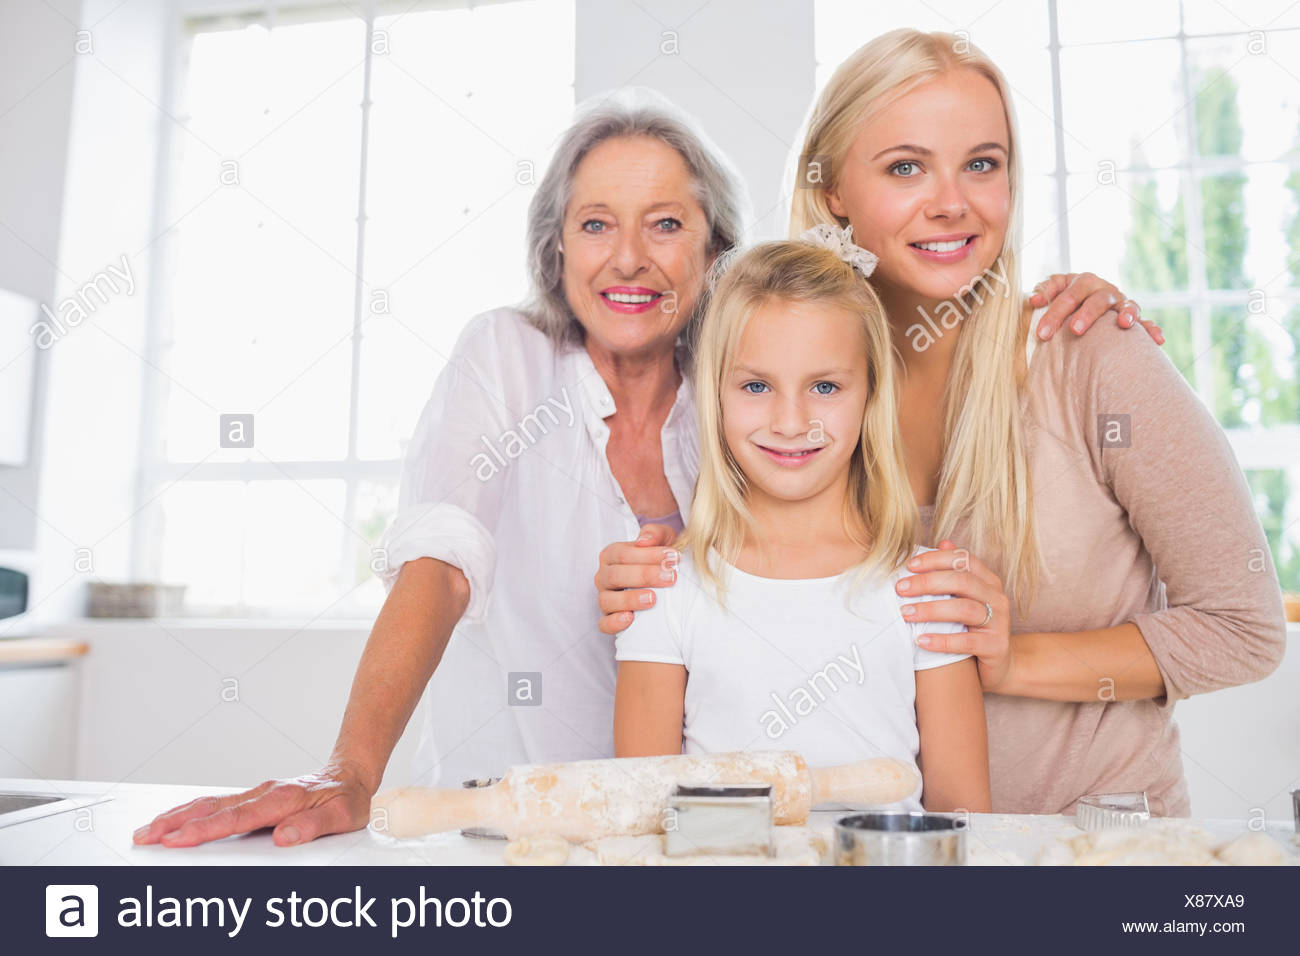 Cheerful mothers and daughters cooking together - Stock Image